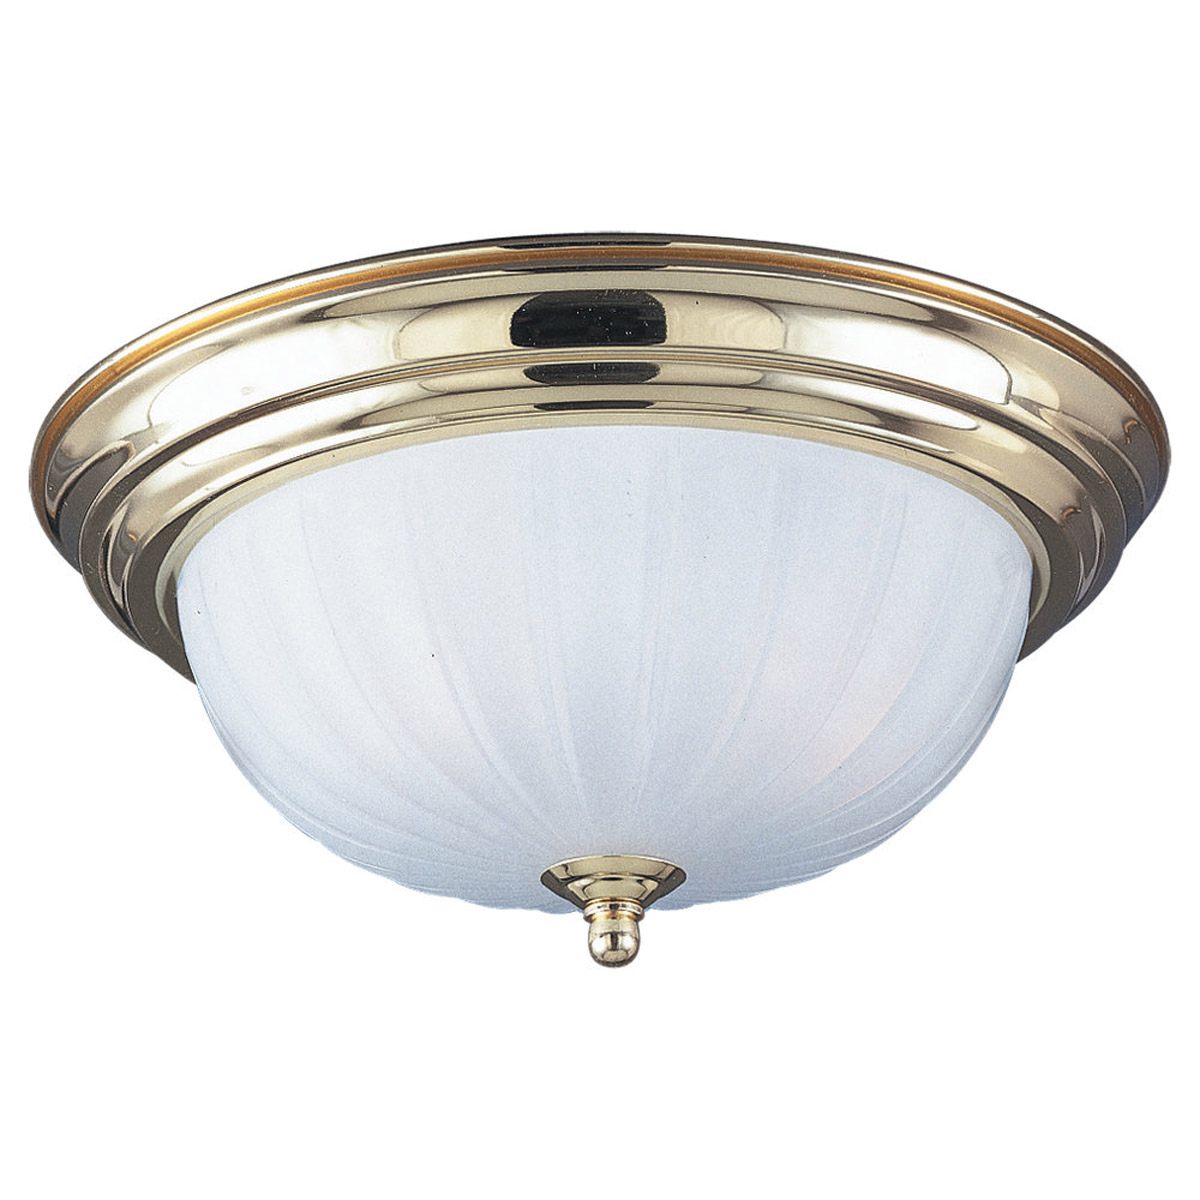 Sea Gull Lighting Linwood 3 Light Flush Mount in Polished Brass 7506-02 photo